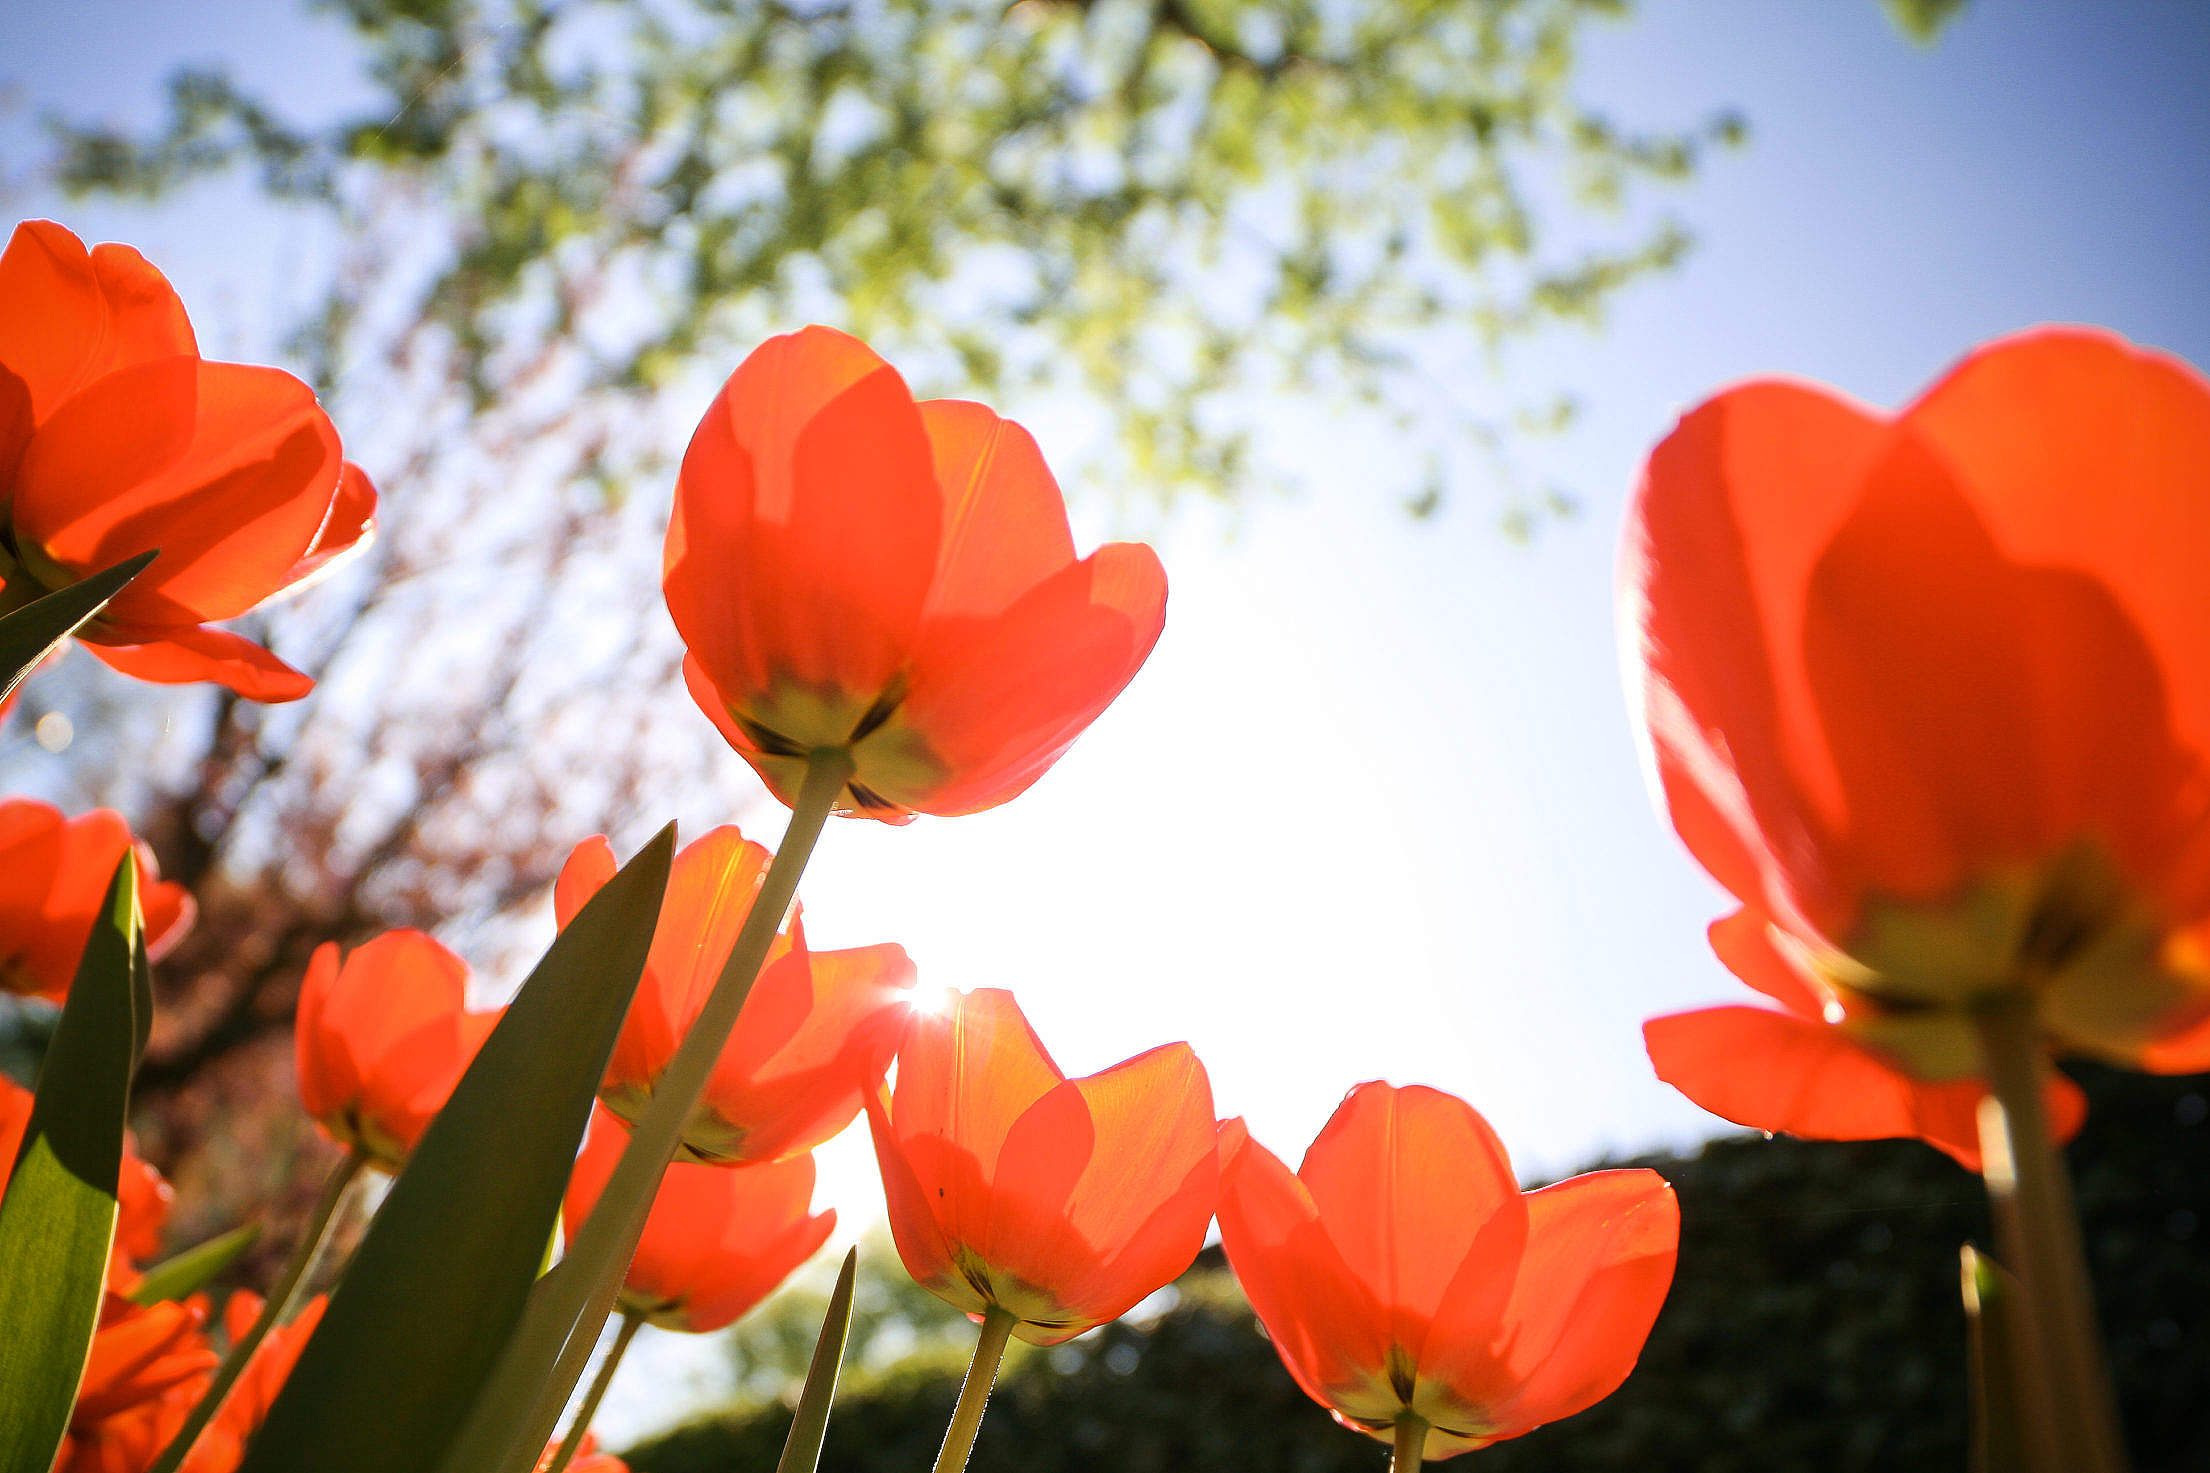 Tulips from Below Free Stock Photo